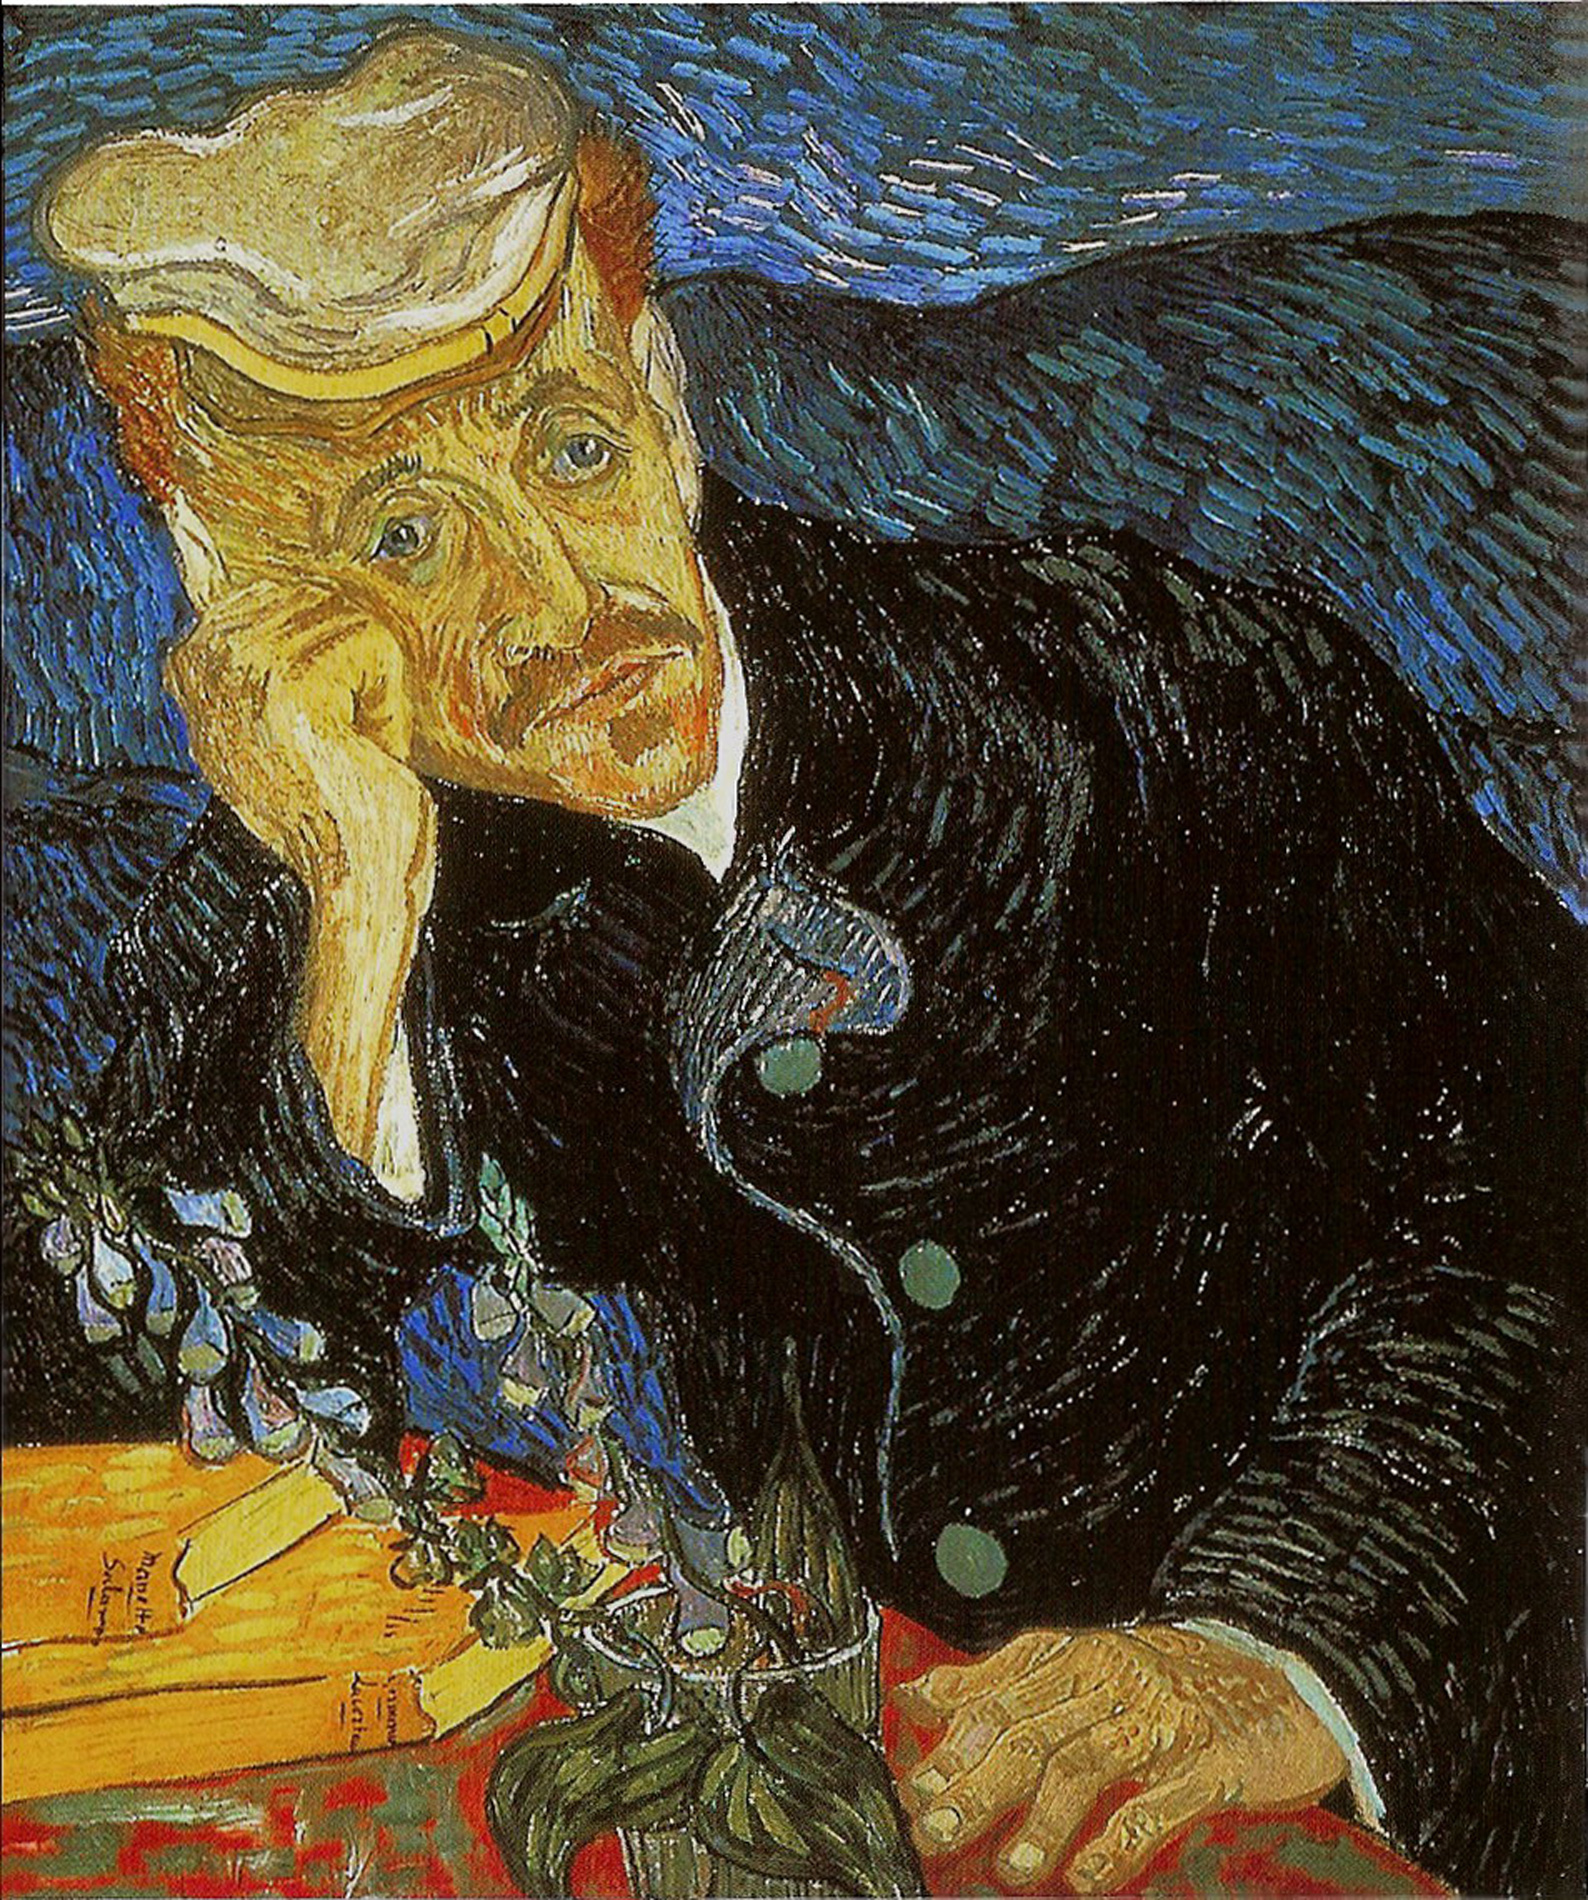 the problems suffered by vincent van gogh paul gaugin and jim morrison